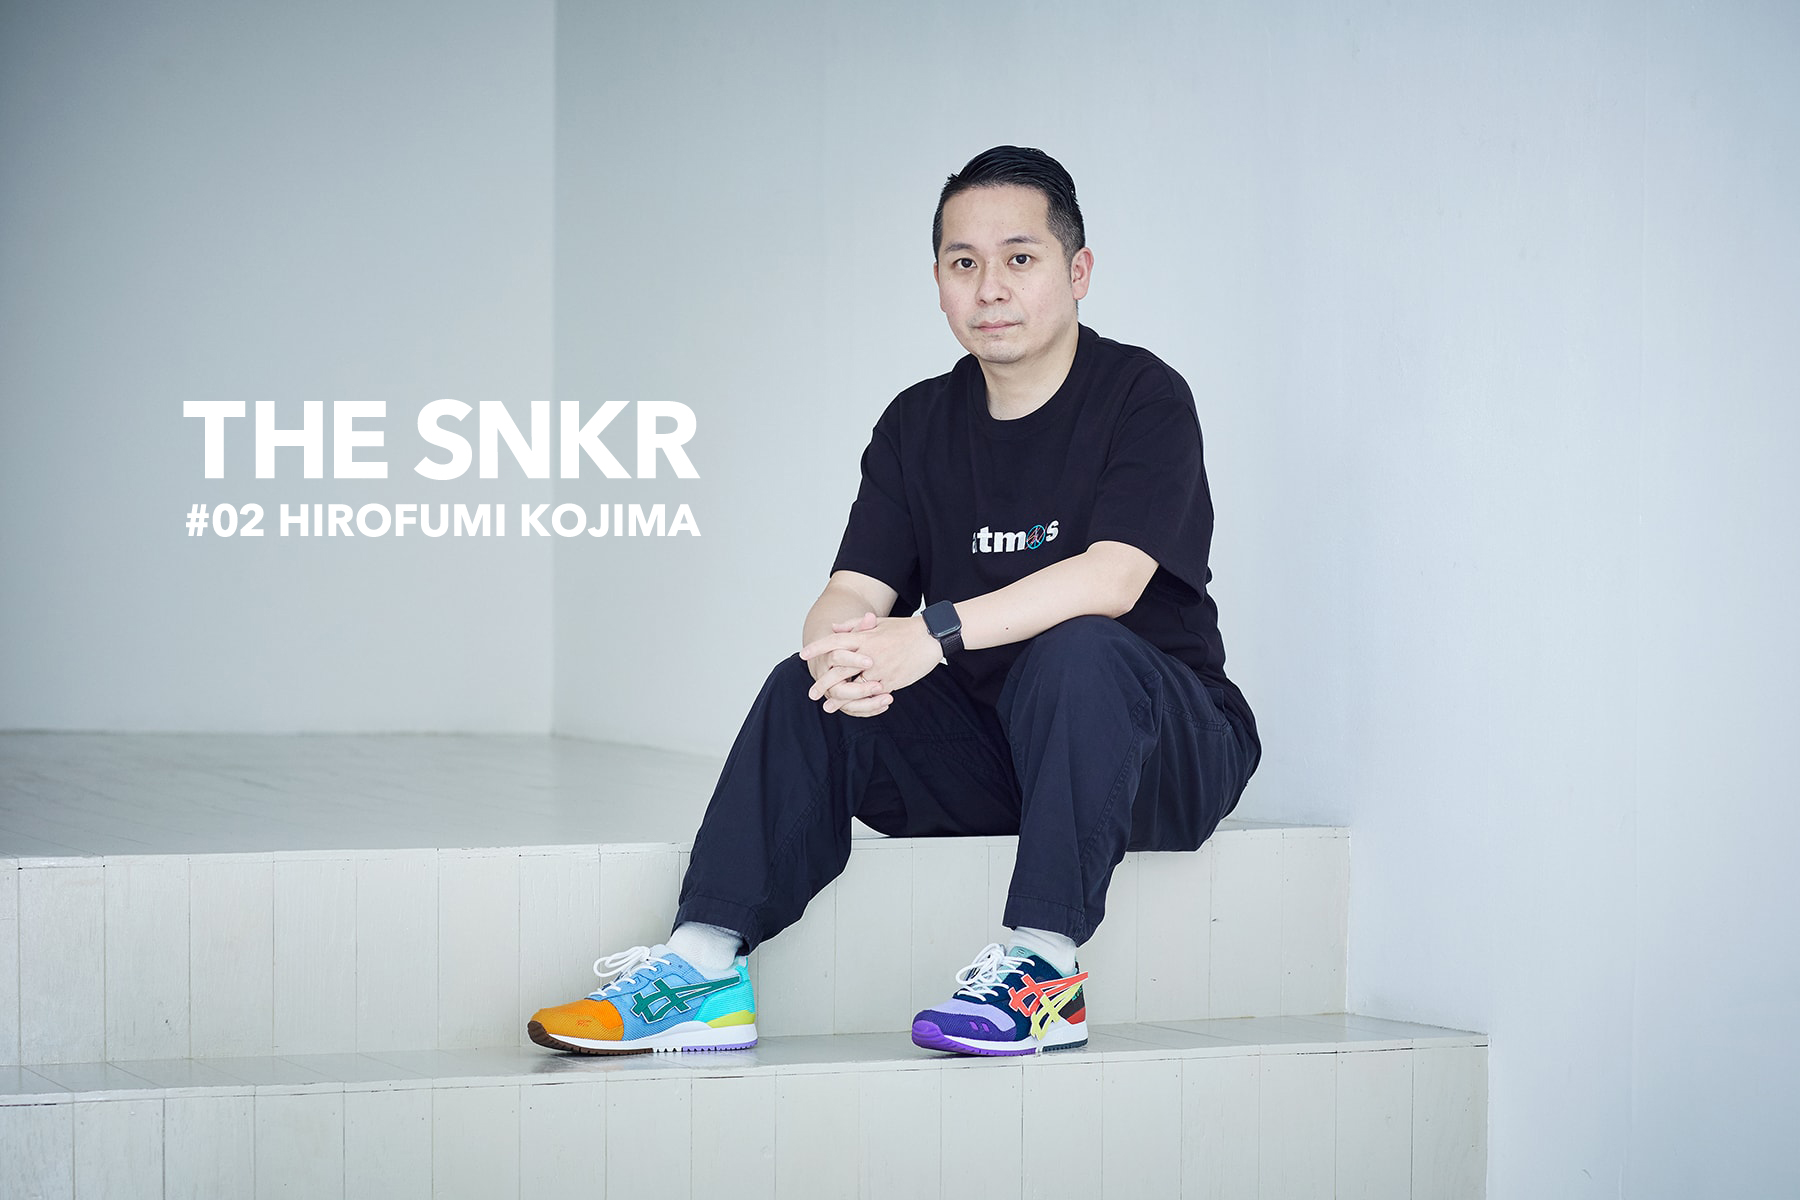 THE SNKR #02 atmos 小島奉文